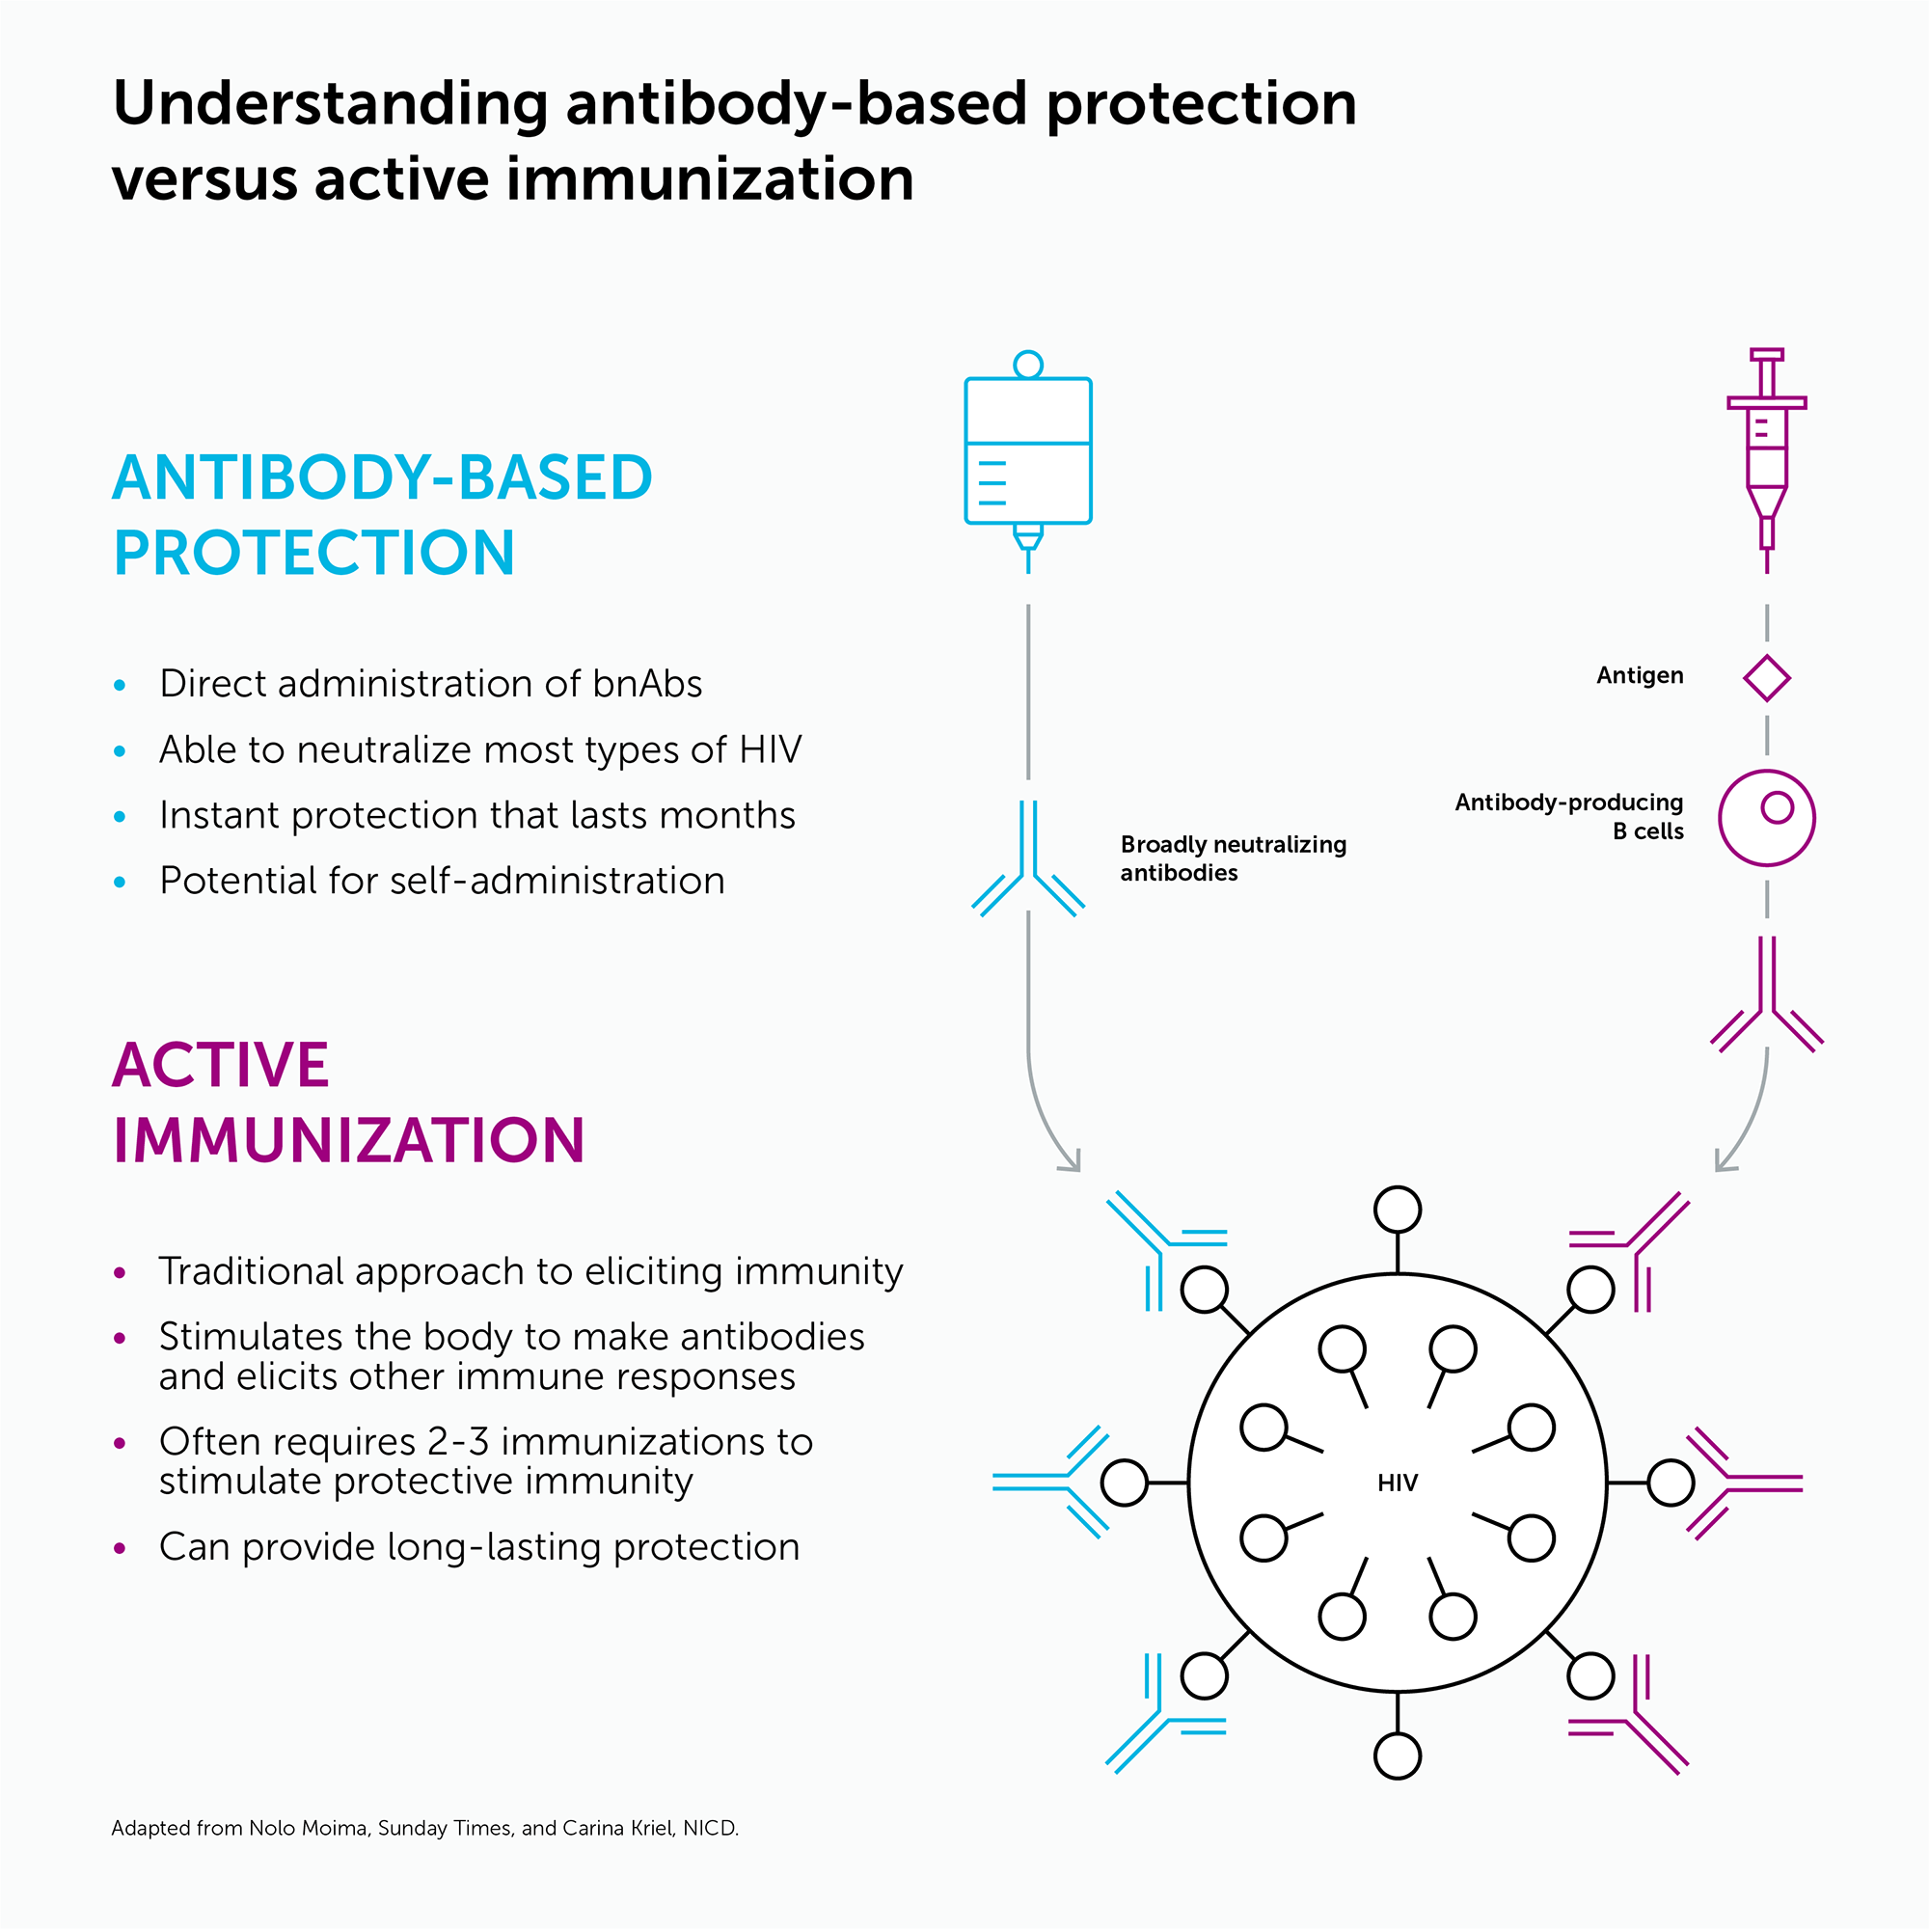 Antibodies vs active immunization